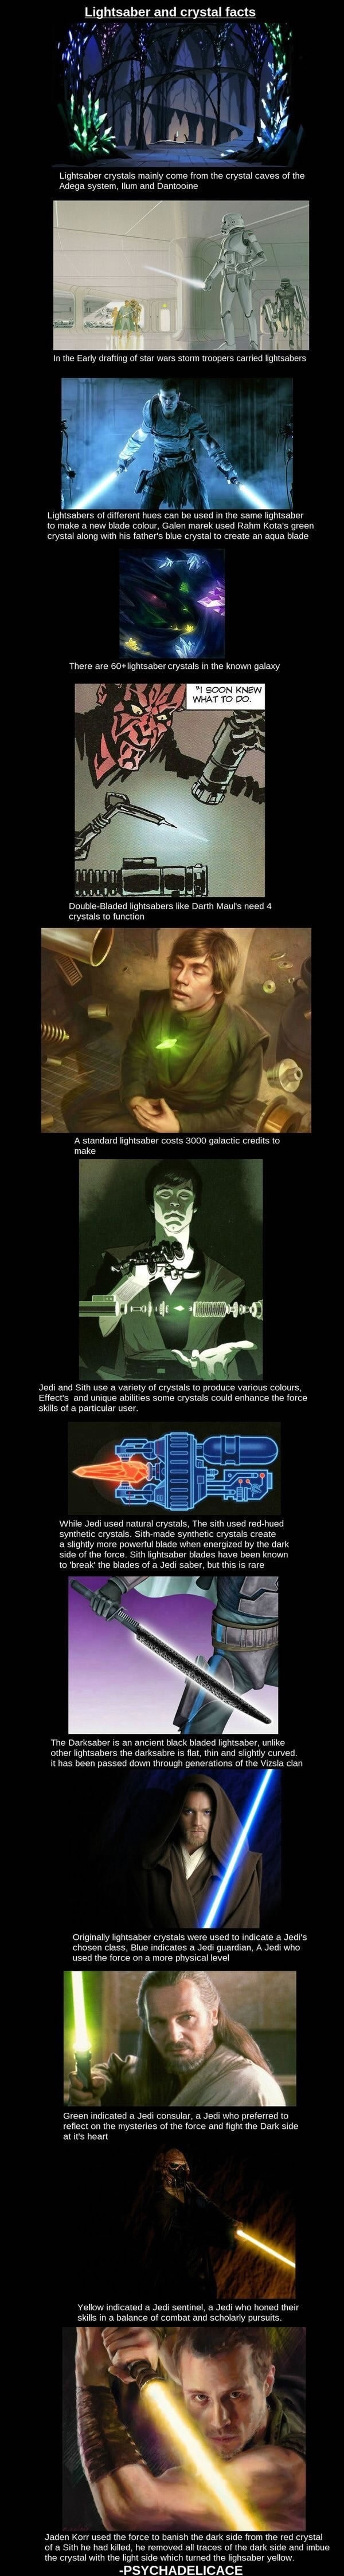 Lightsaber and crystal facts